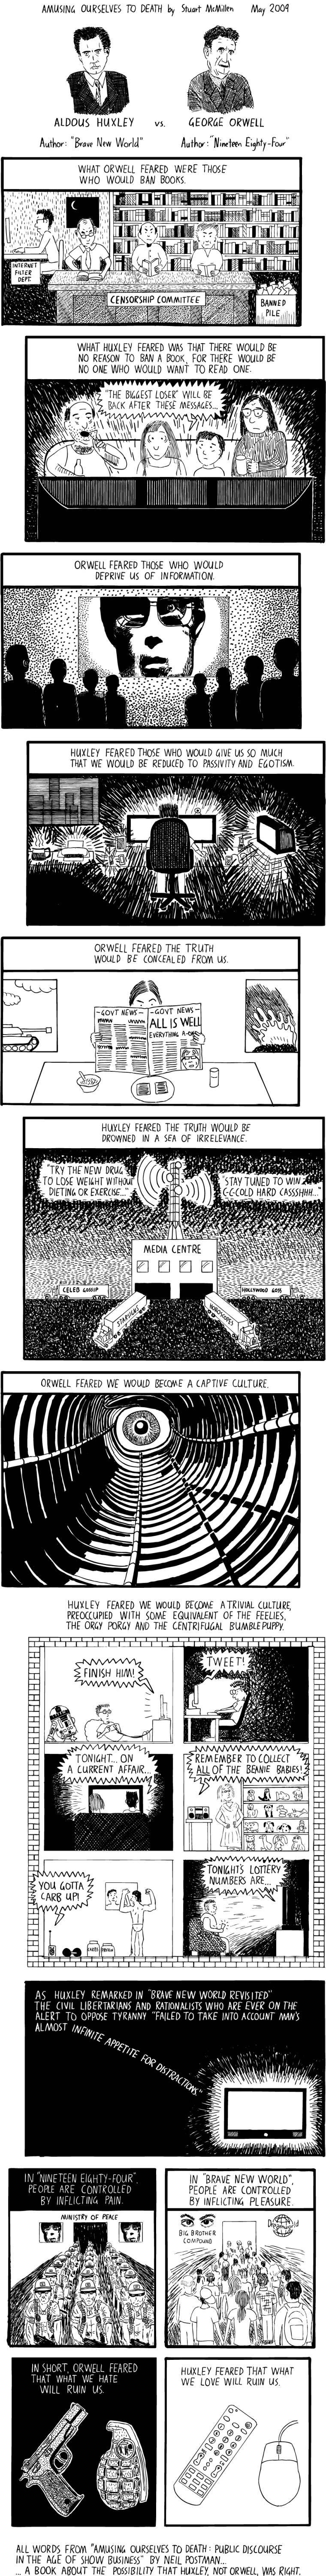 huxley-orwell-amusing-ourselves-to-death